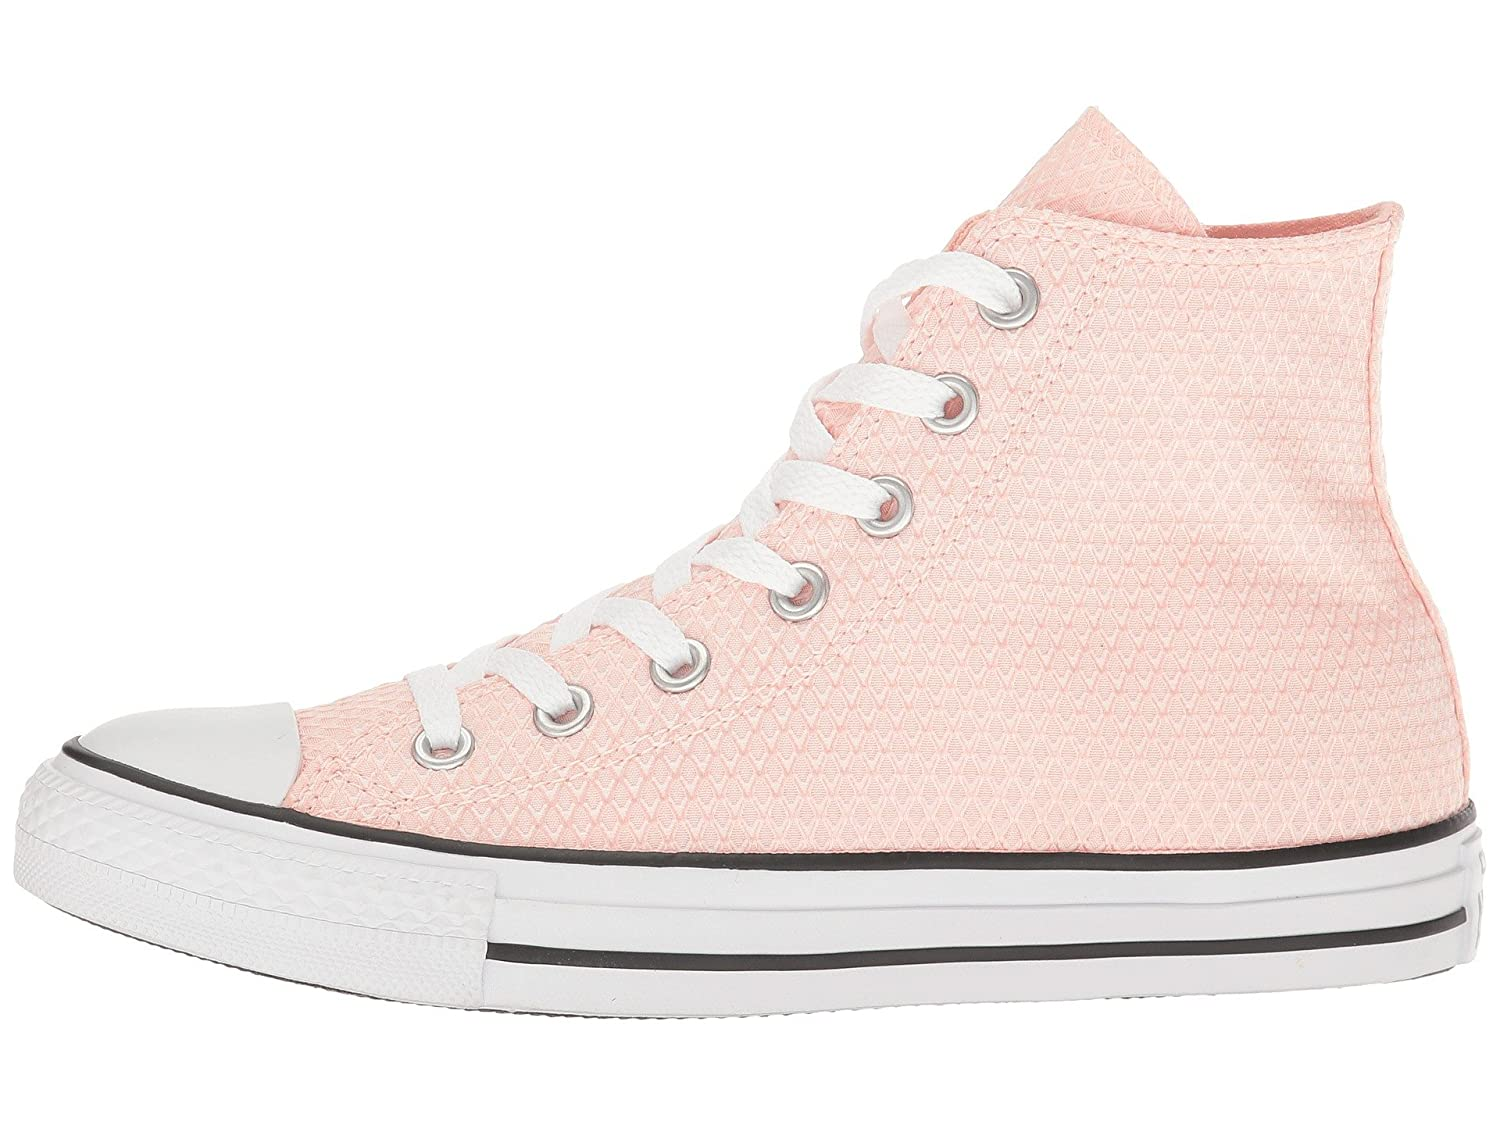 Converse Unisex Chuck Taylor All-Star High-Top Casual Sneakers in Classic Style and Color and Durable Canvas Uppers B01HQQ517C 11 B(M) US White/Vapor Pink/White